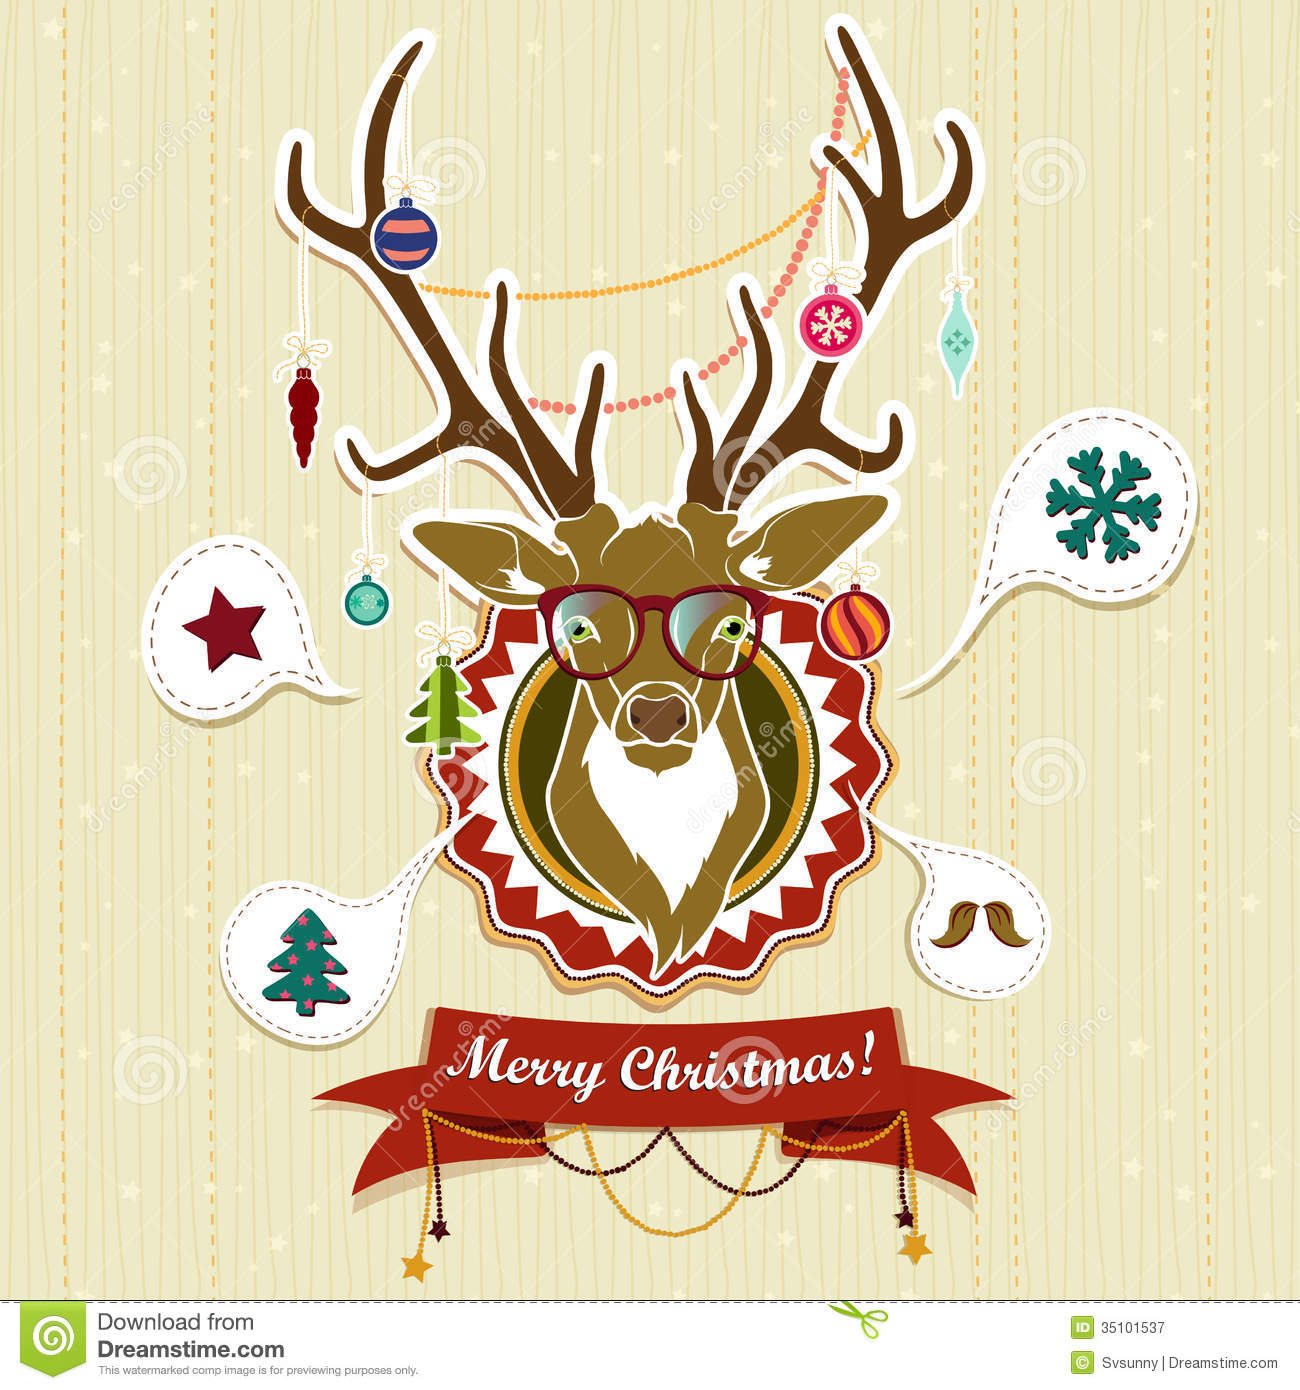 Vintage Christmas Card With Deer Stock Vector ...